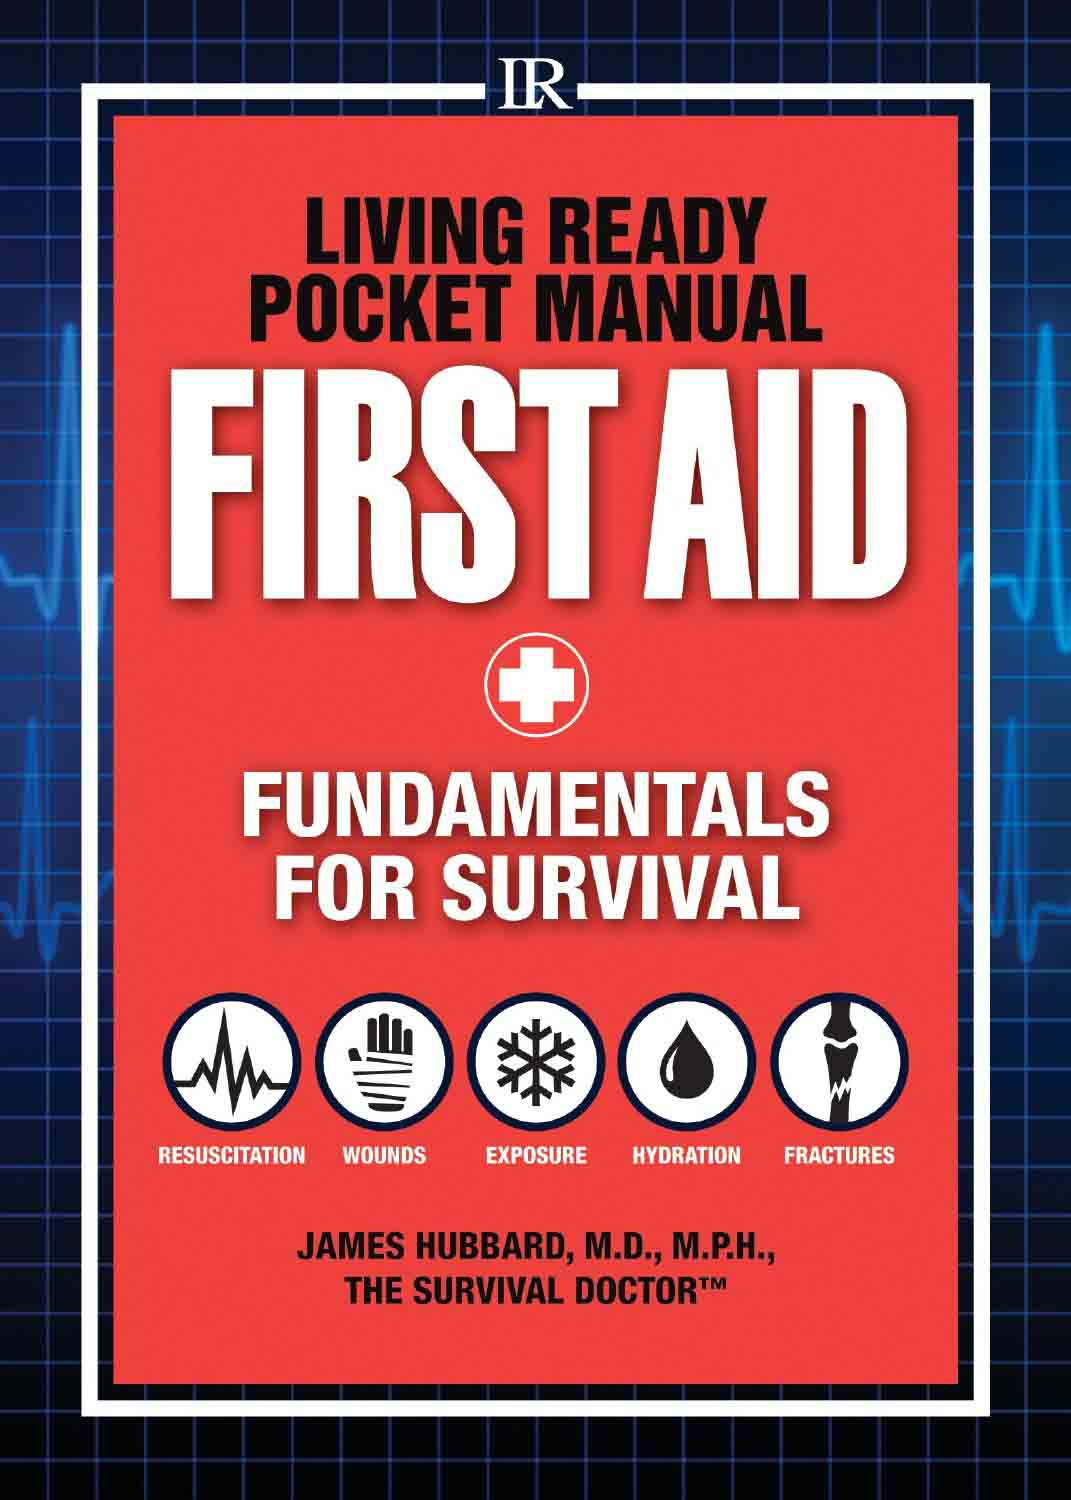 pocket guide on first aid Pocket first aid & cpr includes: hundreds of pages with illustrations, including topics such as cpr, choking, bites, bruises, burns, seizures, diabetic emergencies,.